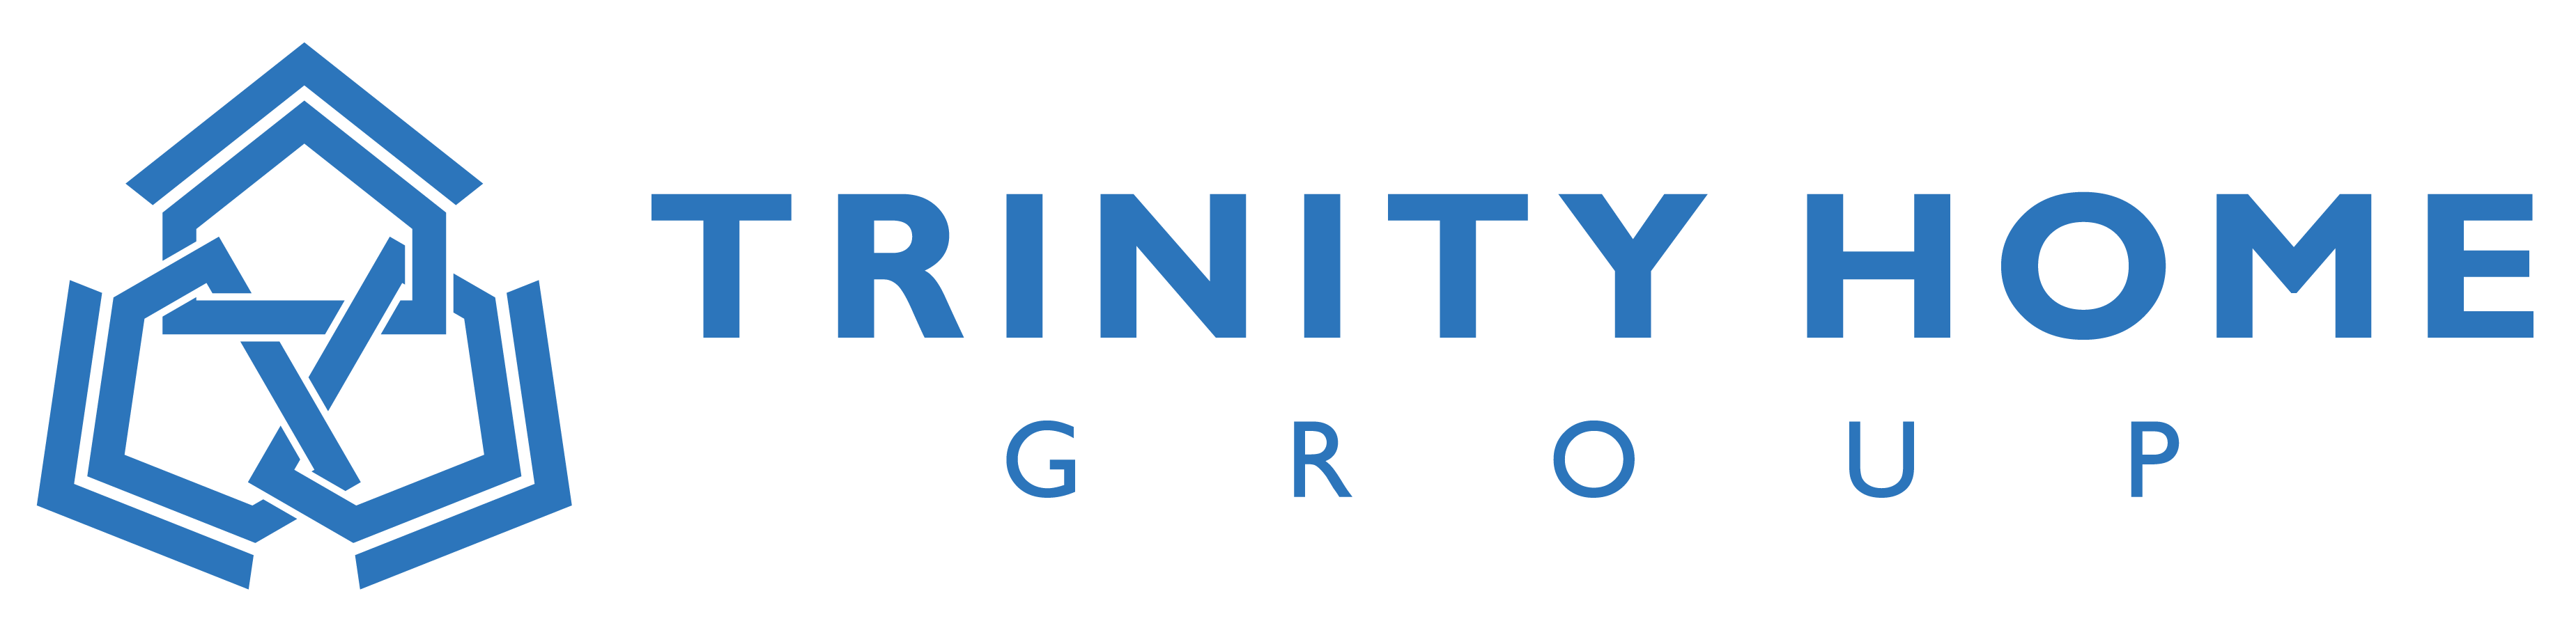 Trinity Home Group Logo